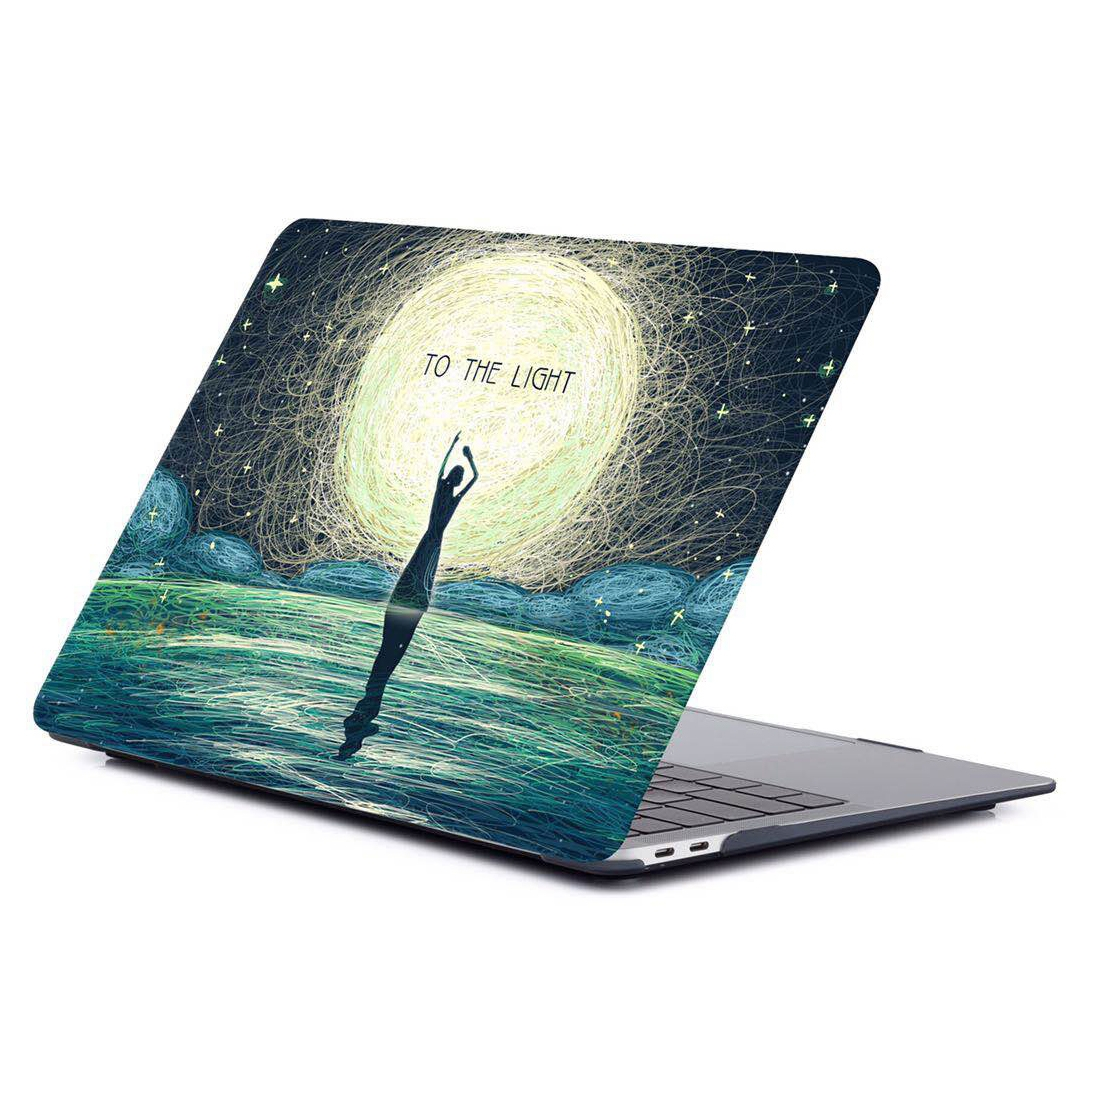 Printing Matte Laptop Protective Case for MacBook Air 11.6 inch A1465 (2012 - 2015) / A1370 (2010 - 2011) (RS-025)